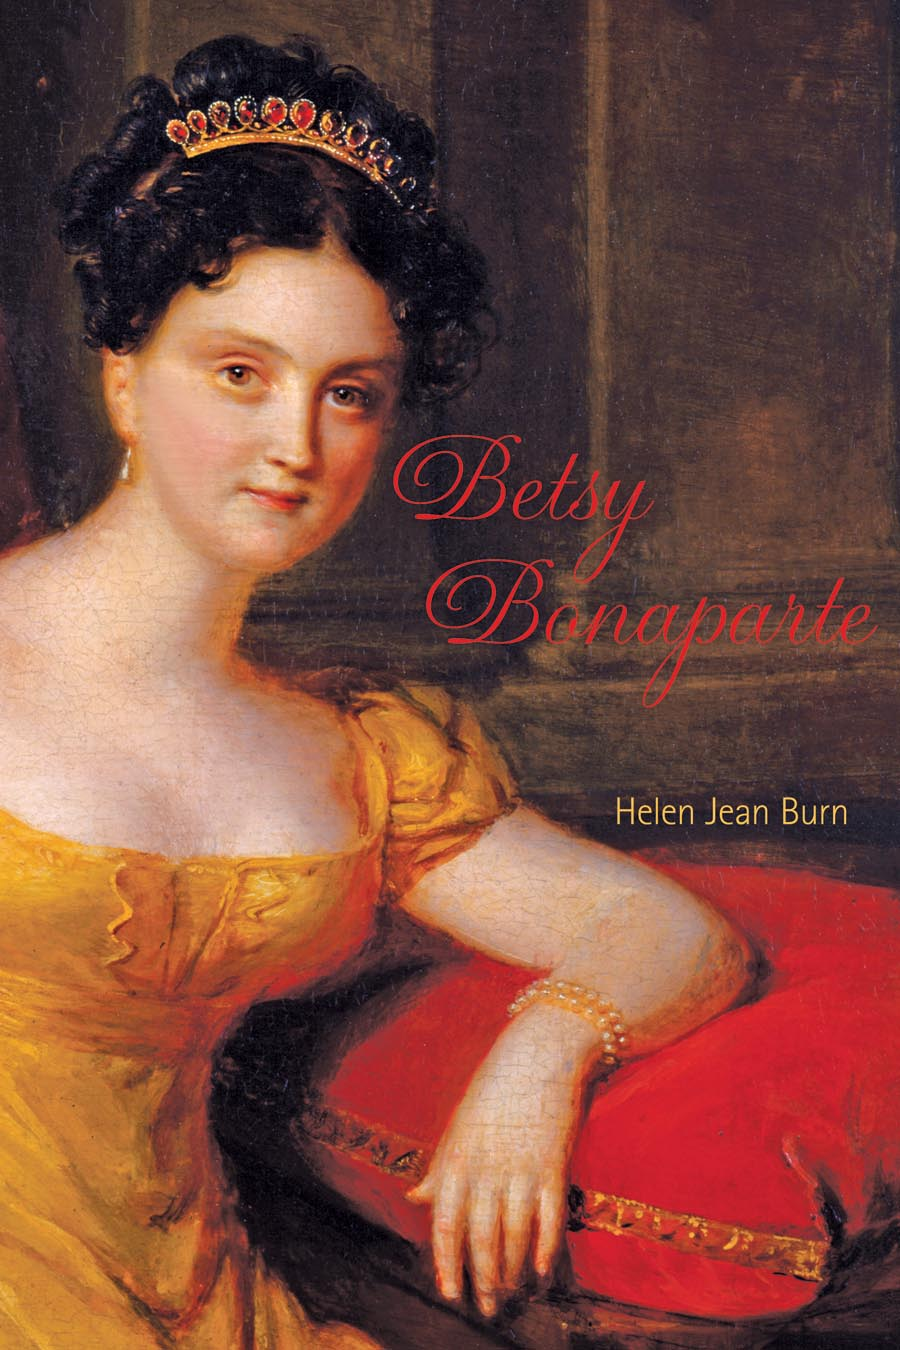 Betsy Bonaparte – The Belle of Baltimore maniates belle kanaris penny of top hill trail